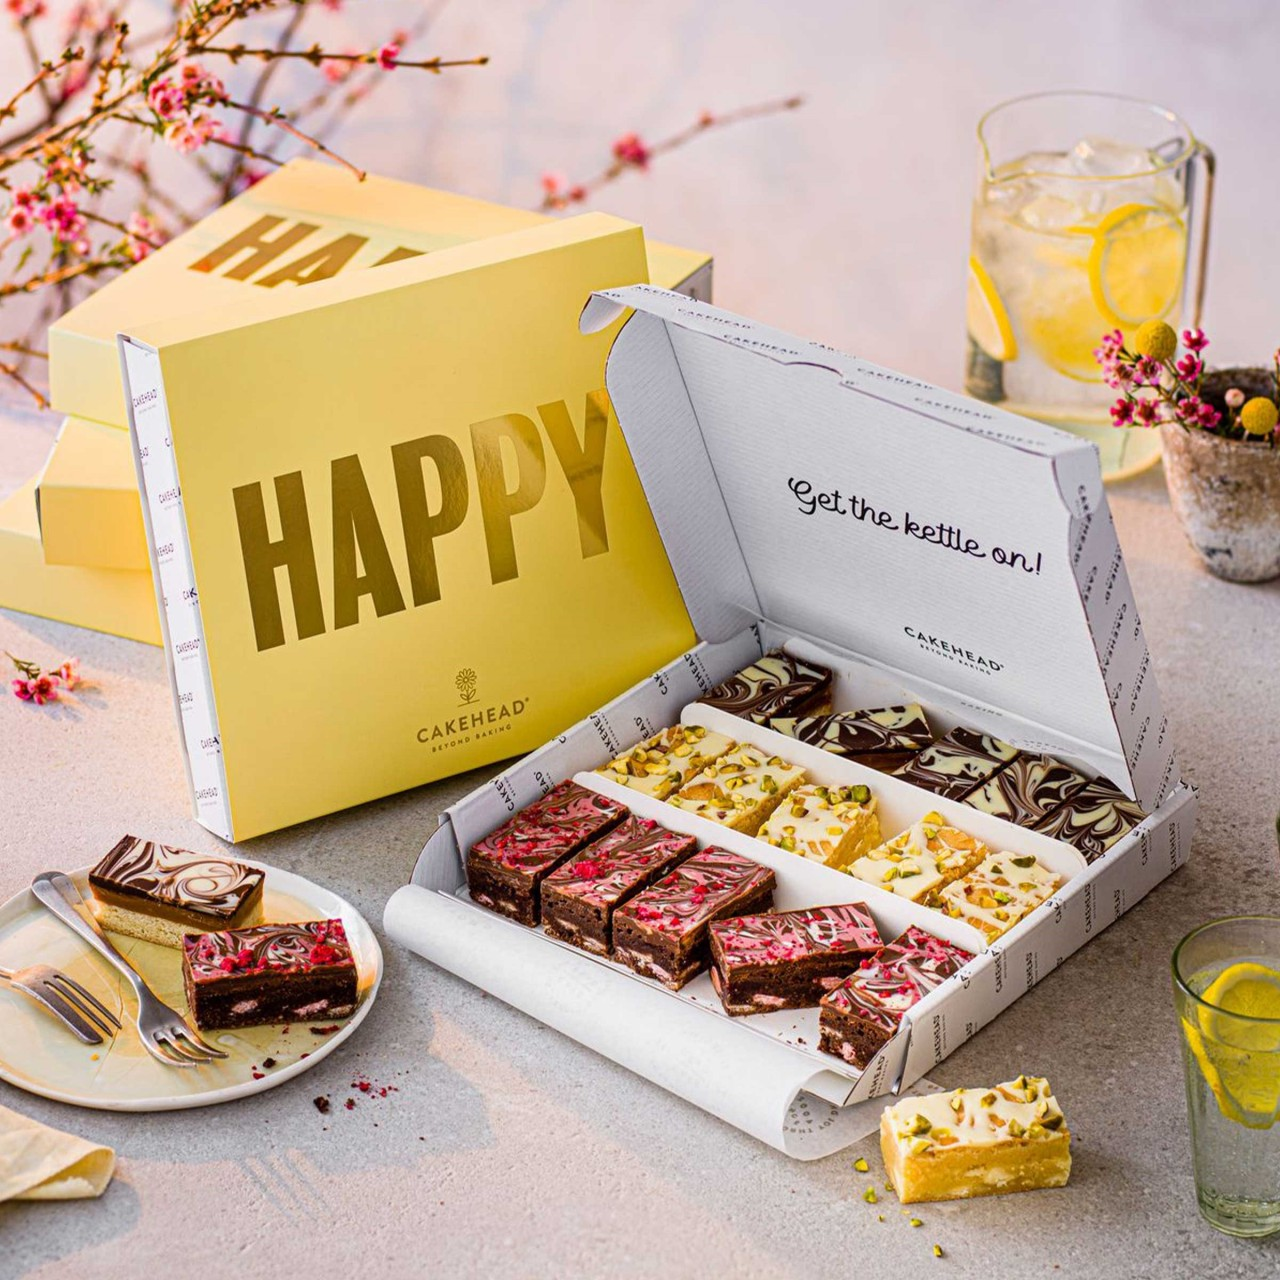 The Happy Box - Image